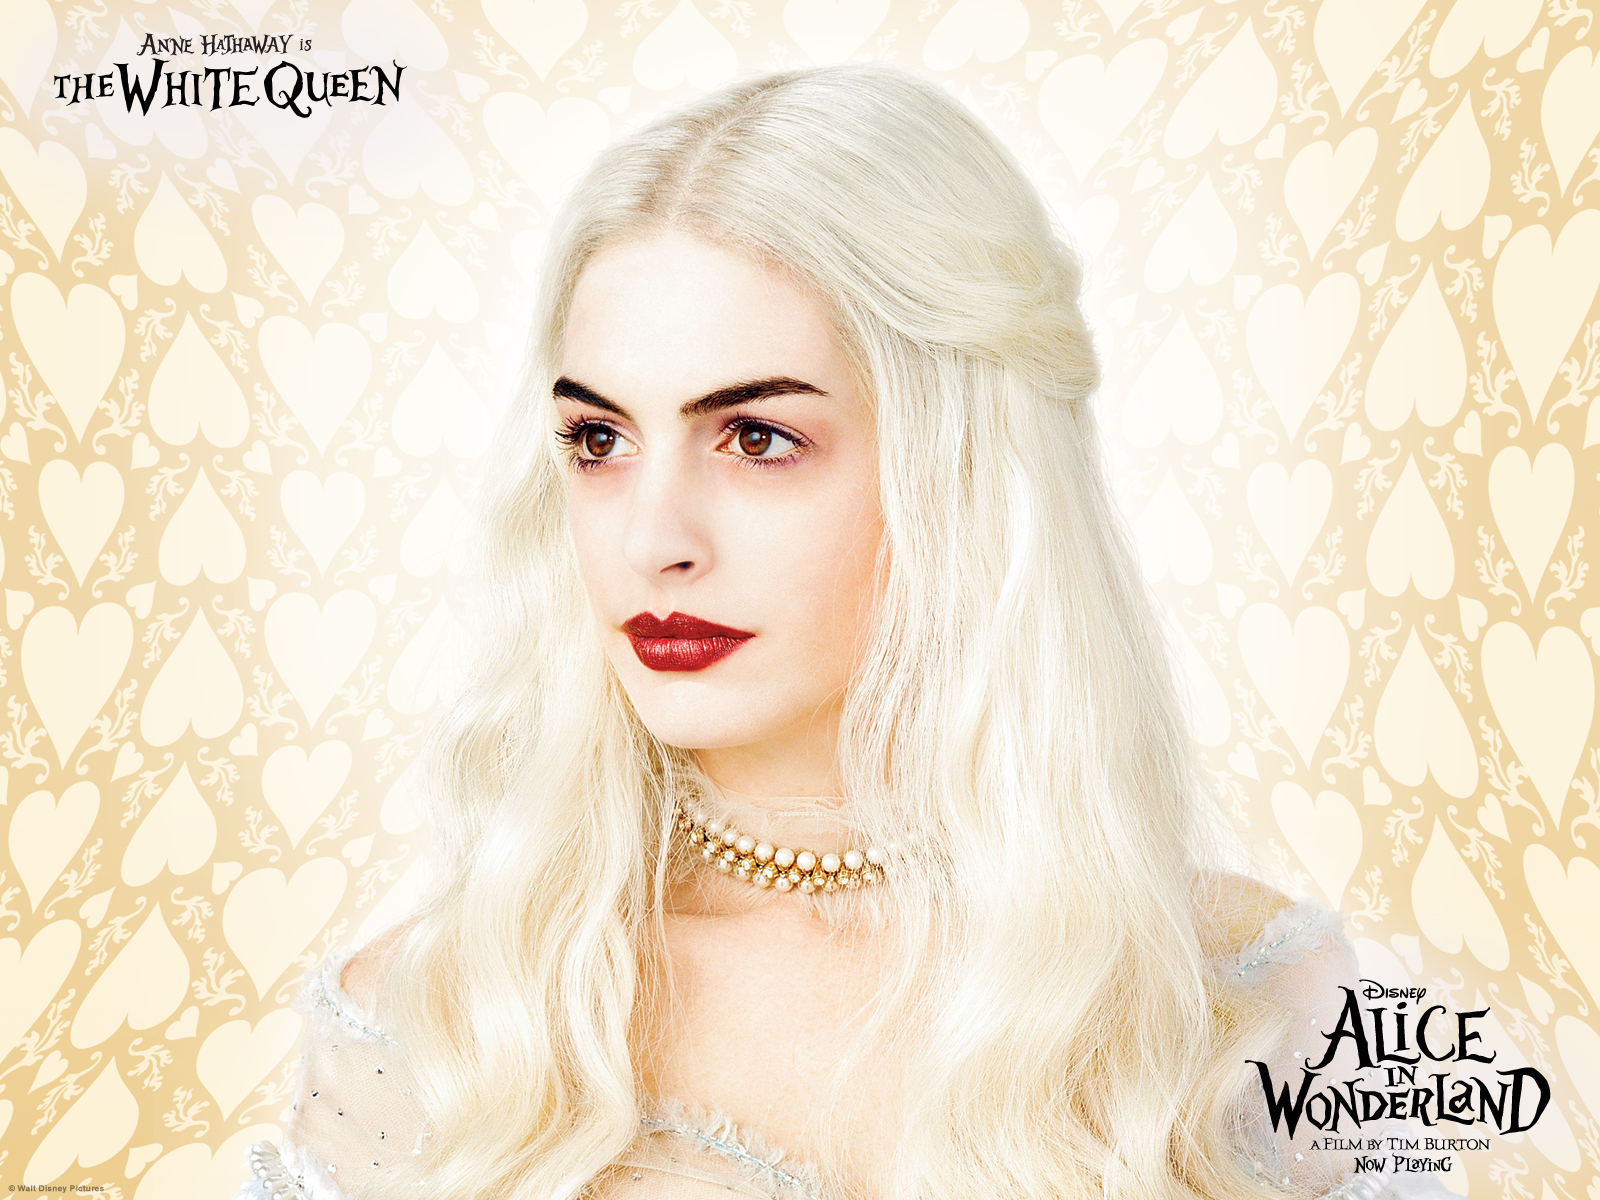 anne hathaway white queen - photo #16